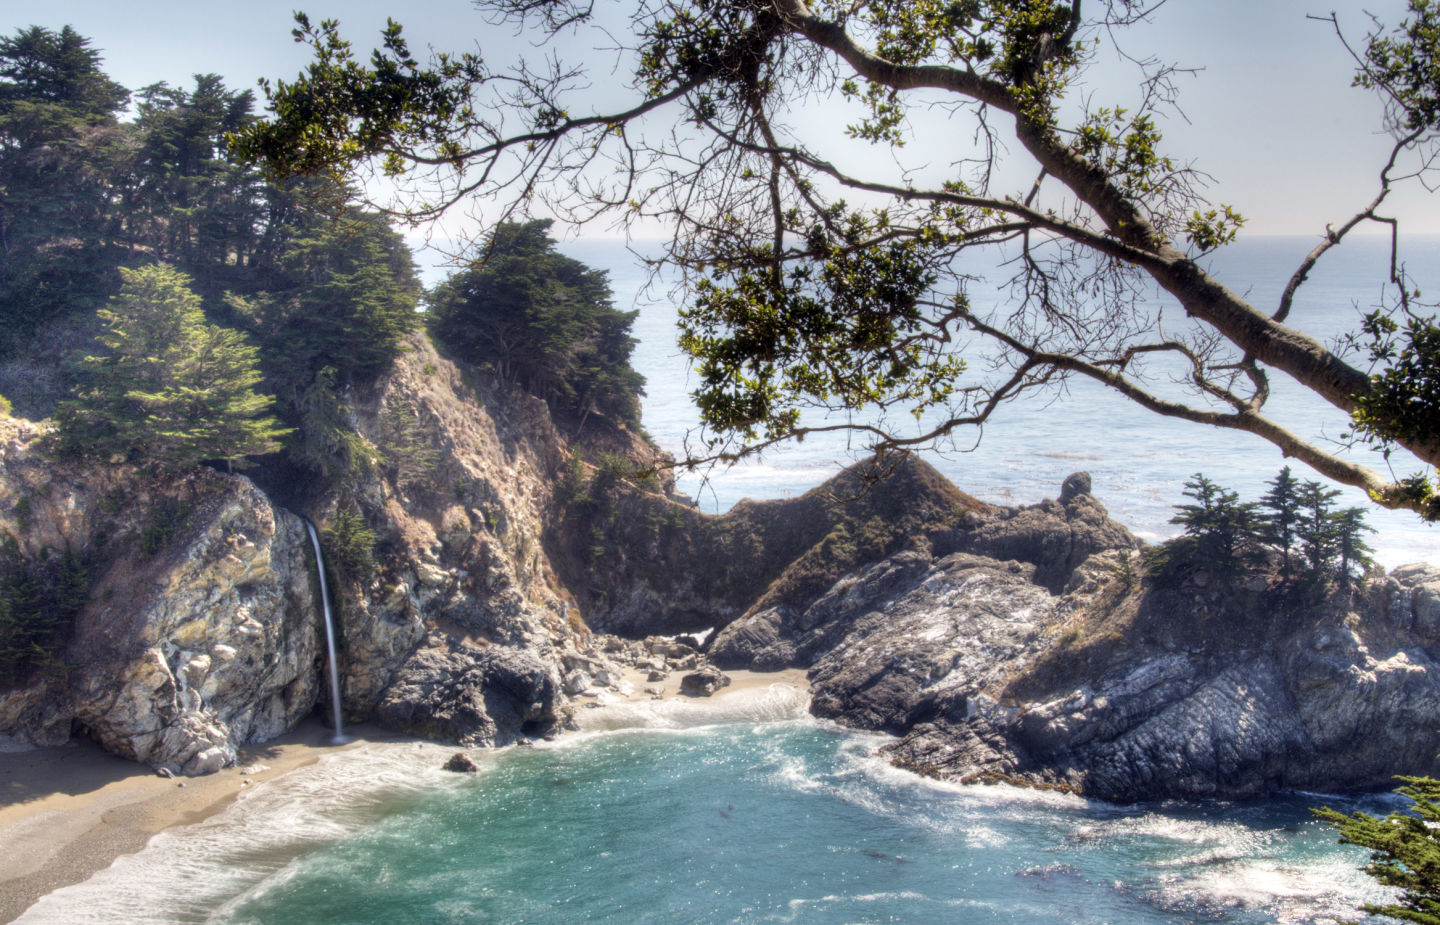 GUIDE: How to Spend a Wallet-Friendly Weekend in Big Sur